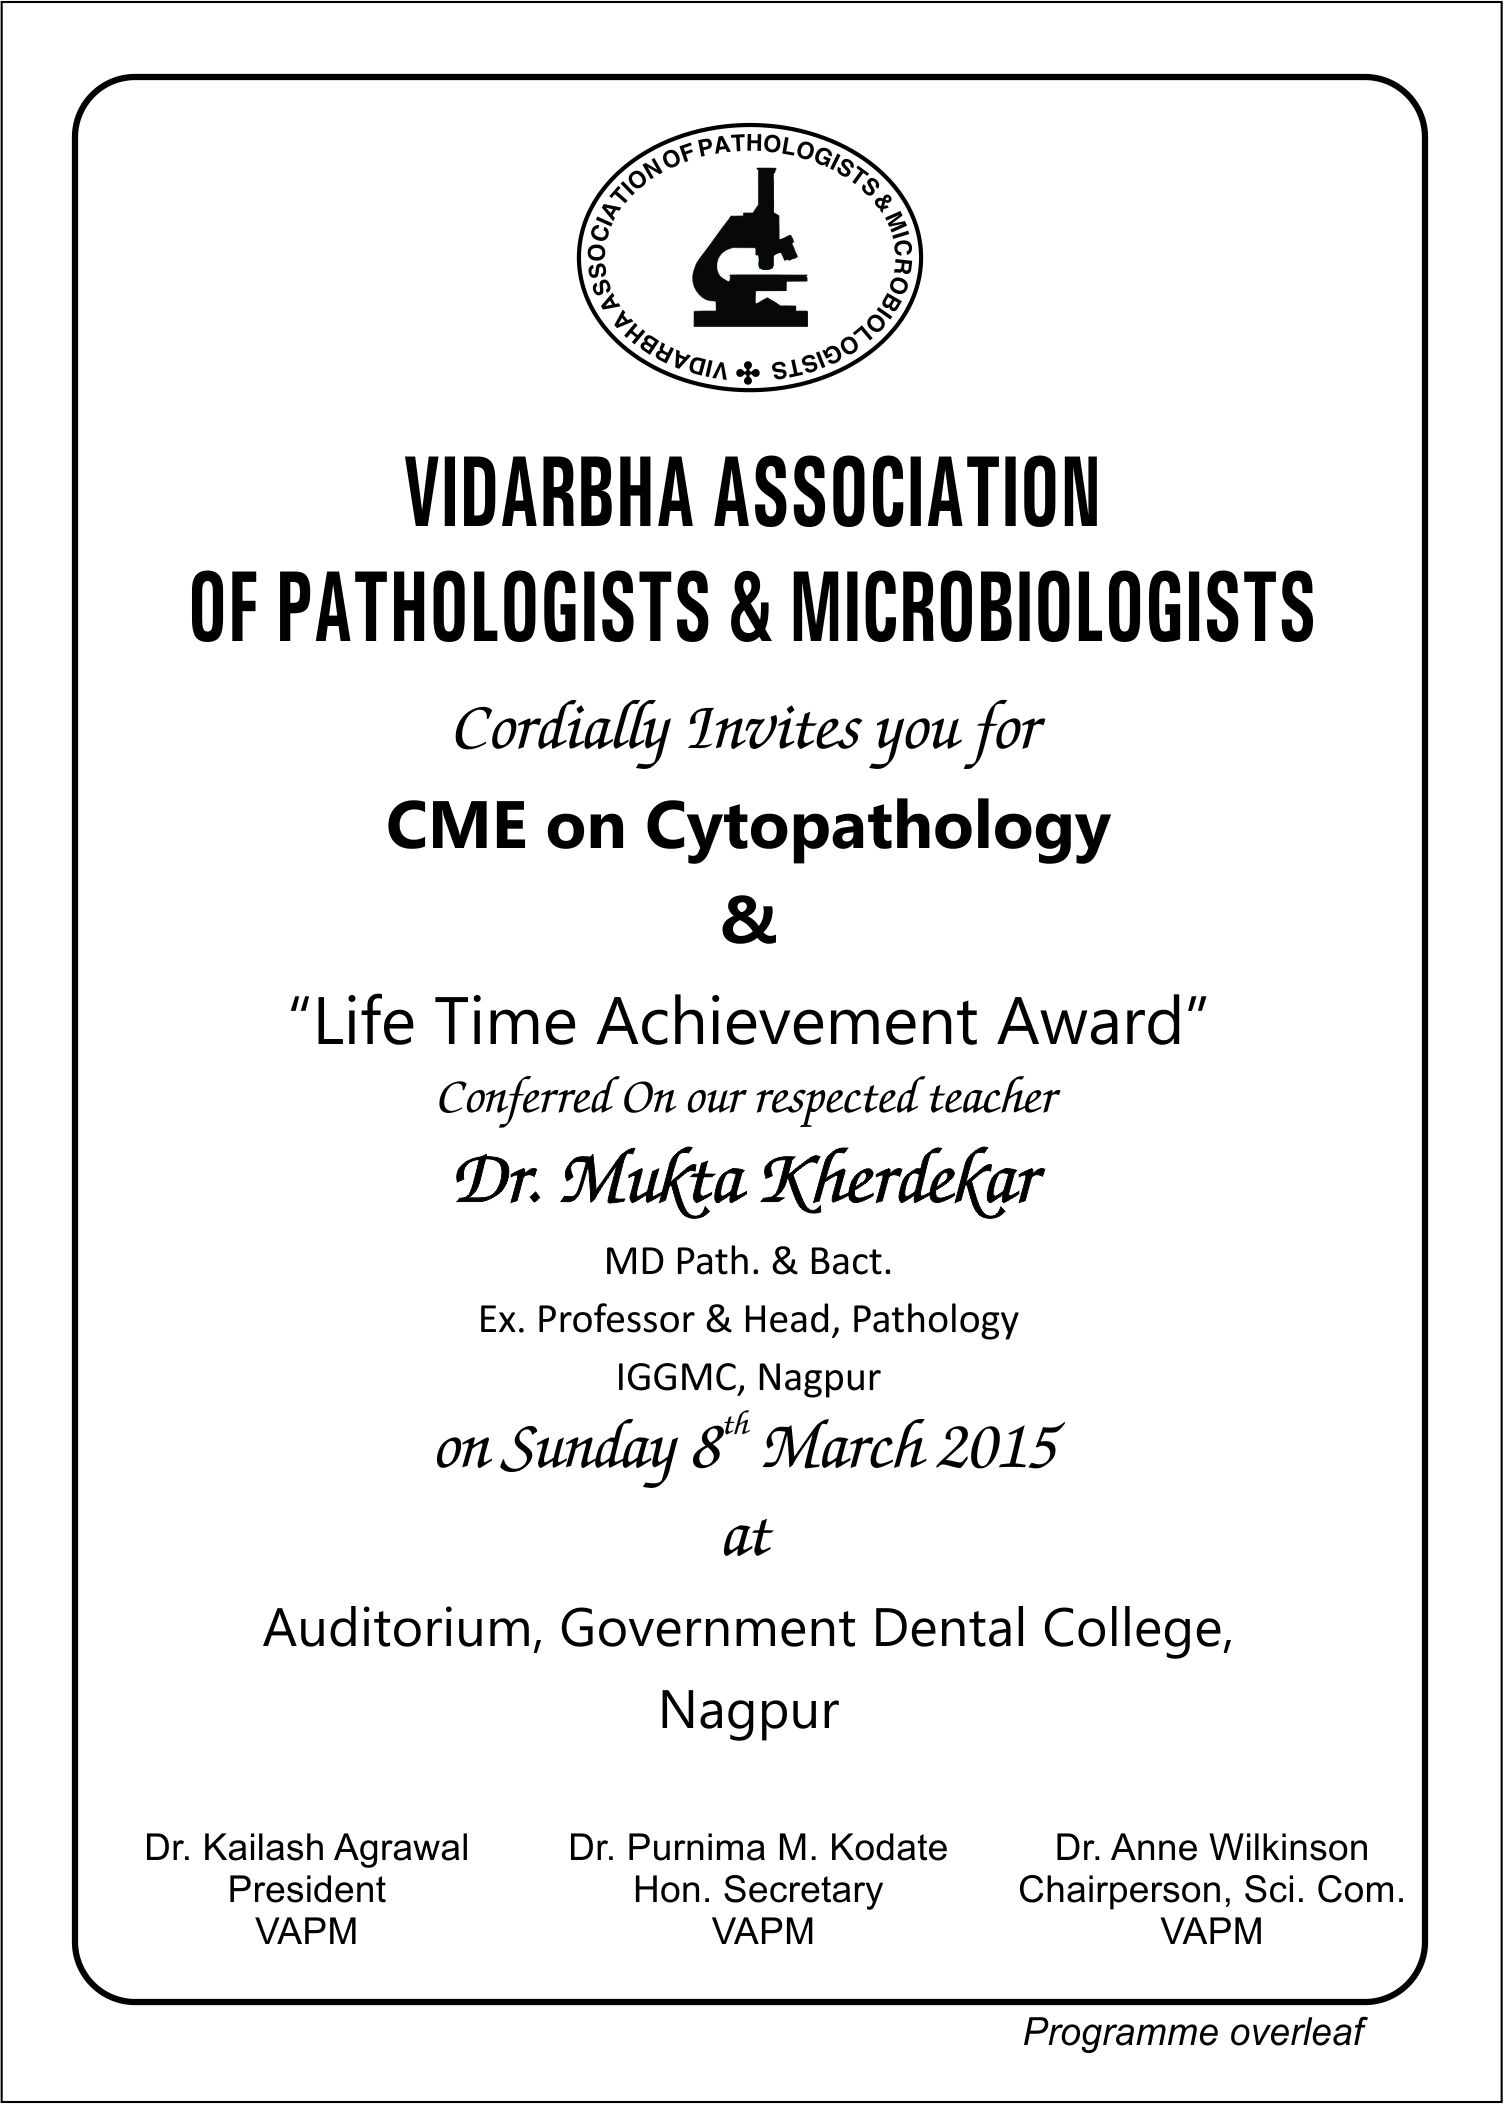 CME on Cytopathology with felicitation of our respected teacher Dr